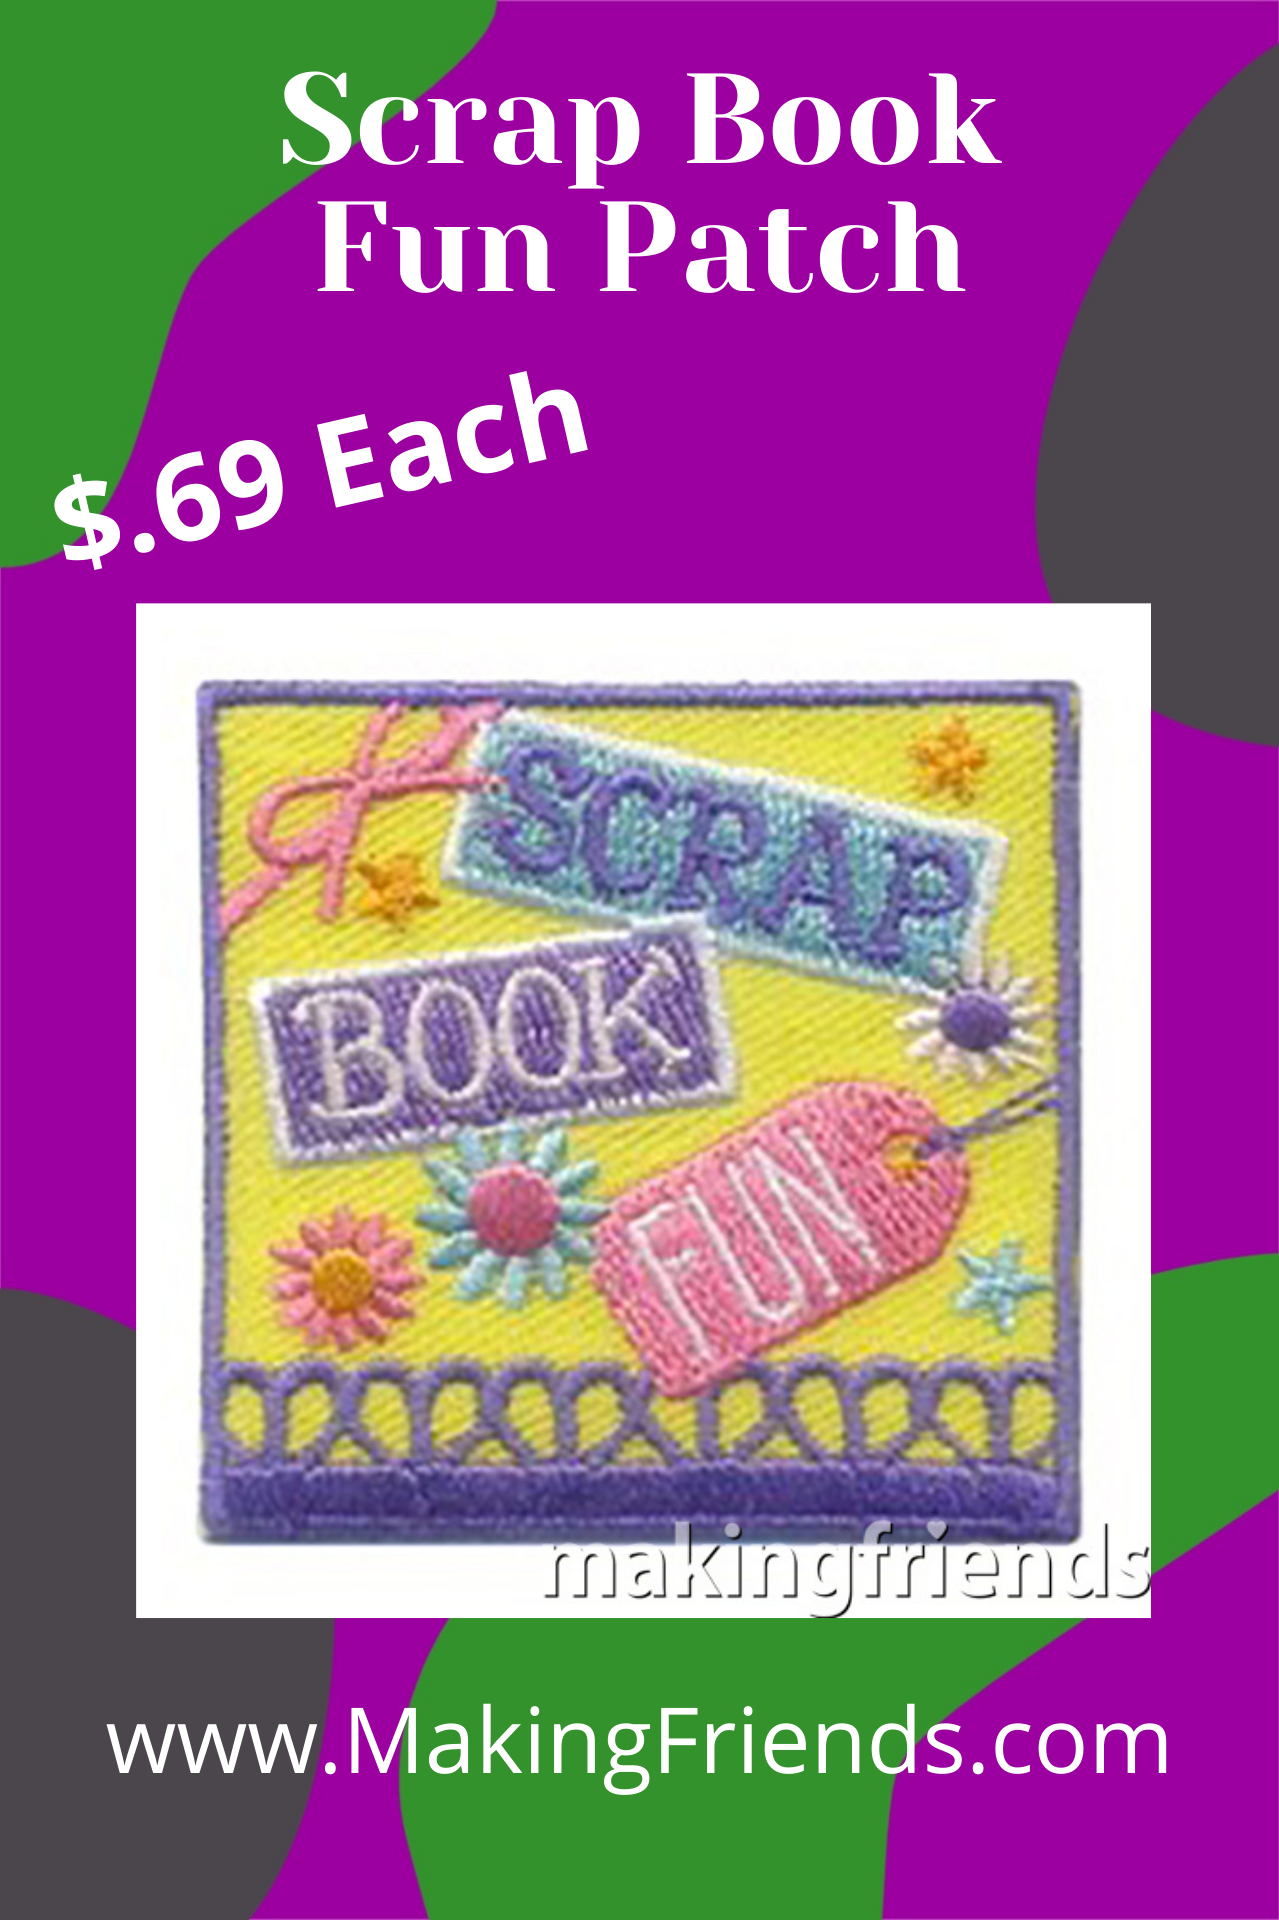 Your girls will have a great time creating scrapbooks to remember the fun times with their troop or other special occasions! #makingfriends #scrapbook #funpatch #scrapbooking #scrapbookpatch #girlscouts #gsfunpatch #funtimes via @gsleader411